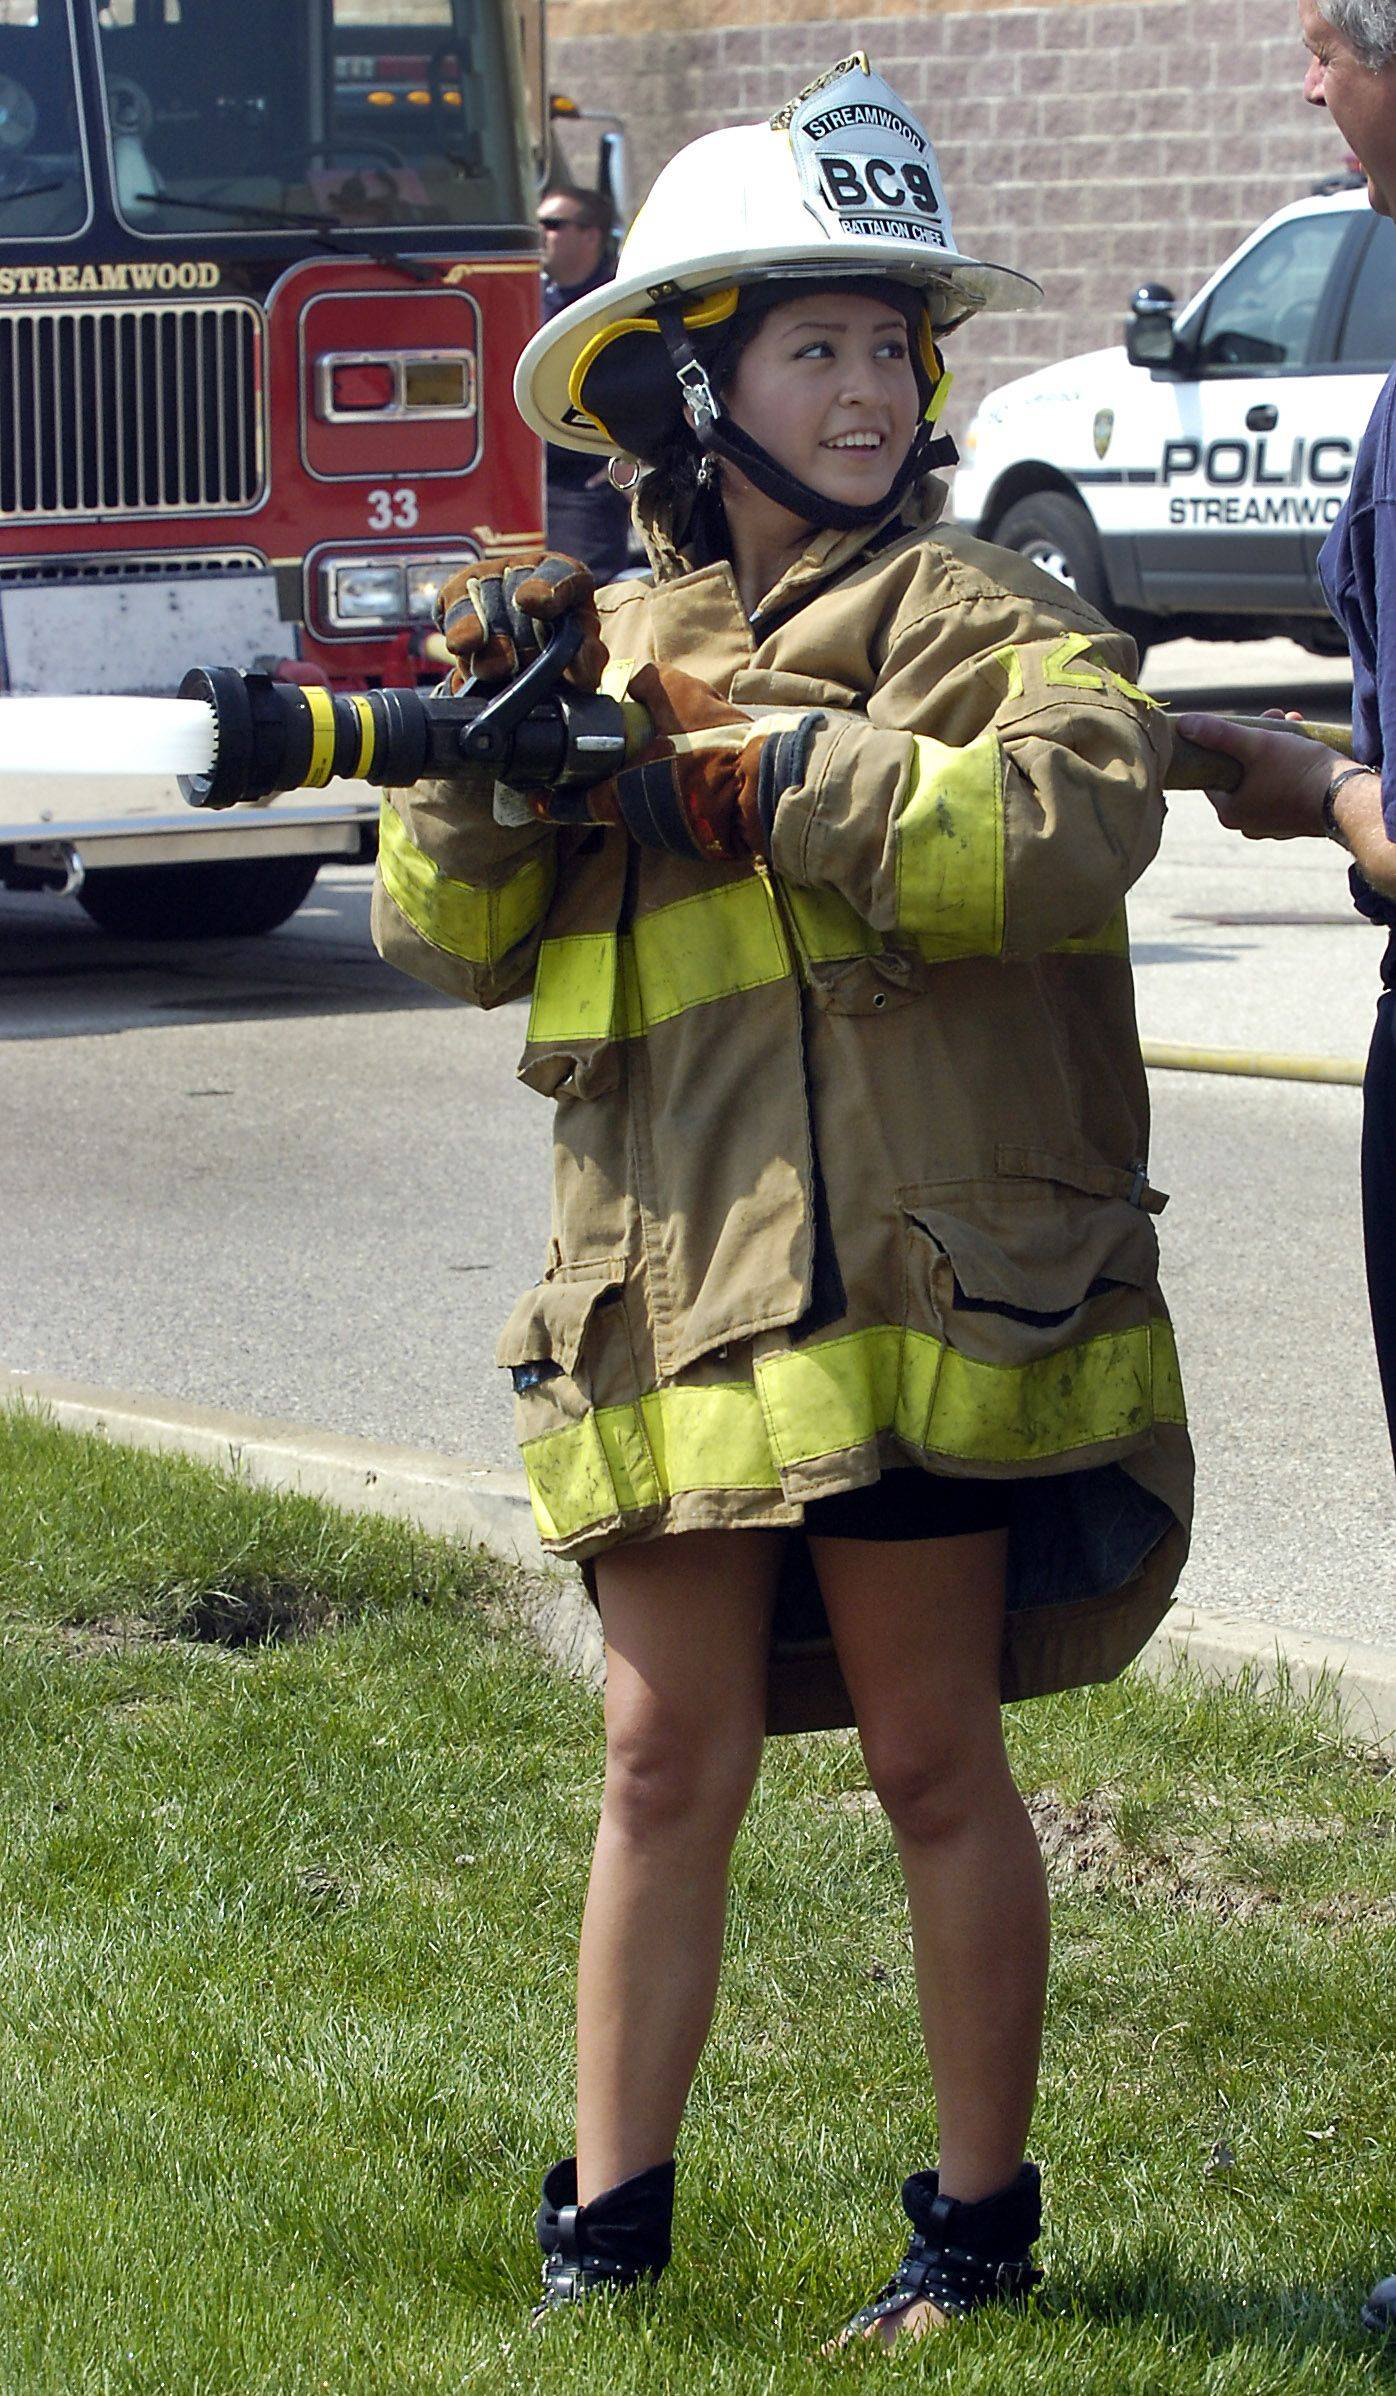 Streamwood High School senior Rosa Morales, 17, learns about the Streamwood fire department Wednesday during the school's 30th annual Student Government Day.